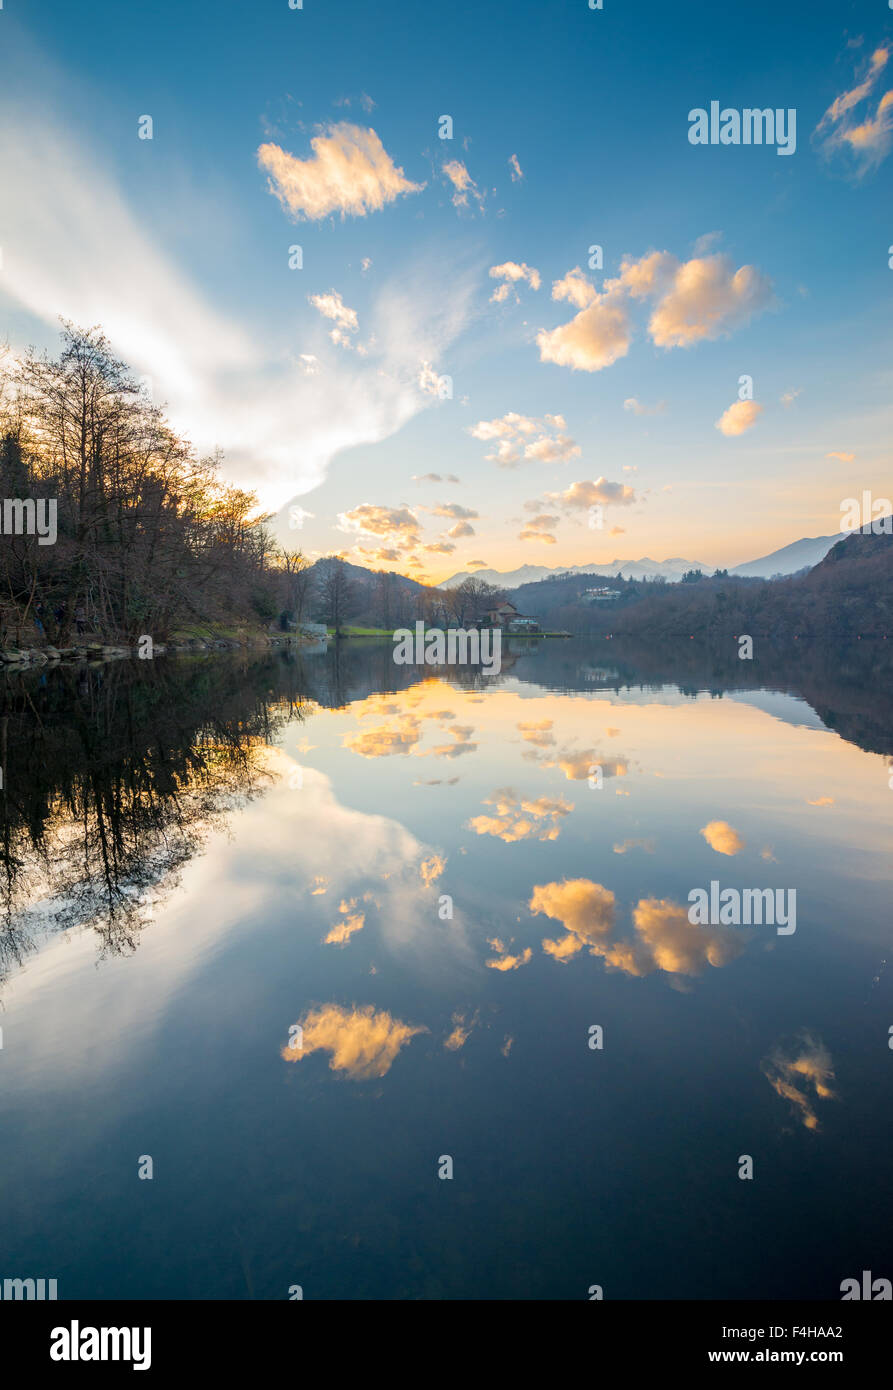 Stunning view of lake Sirio in Piedmont at the sunset, with great sky reflecting itself in the calm water - Stock Image